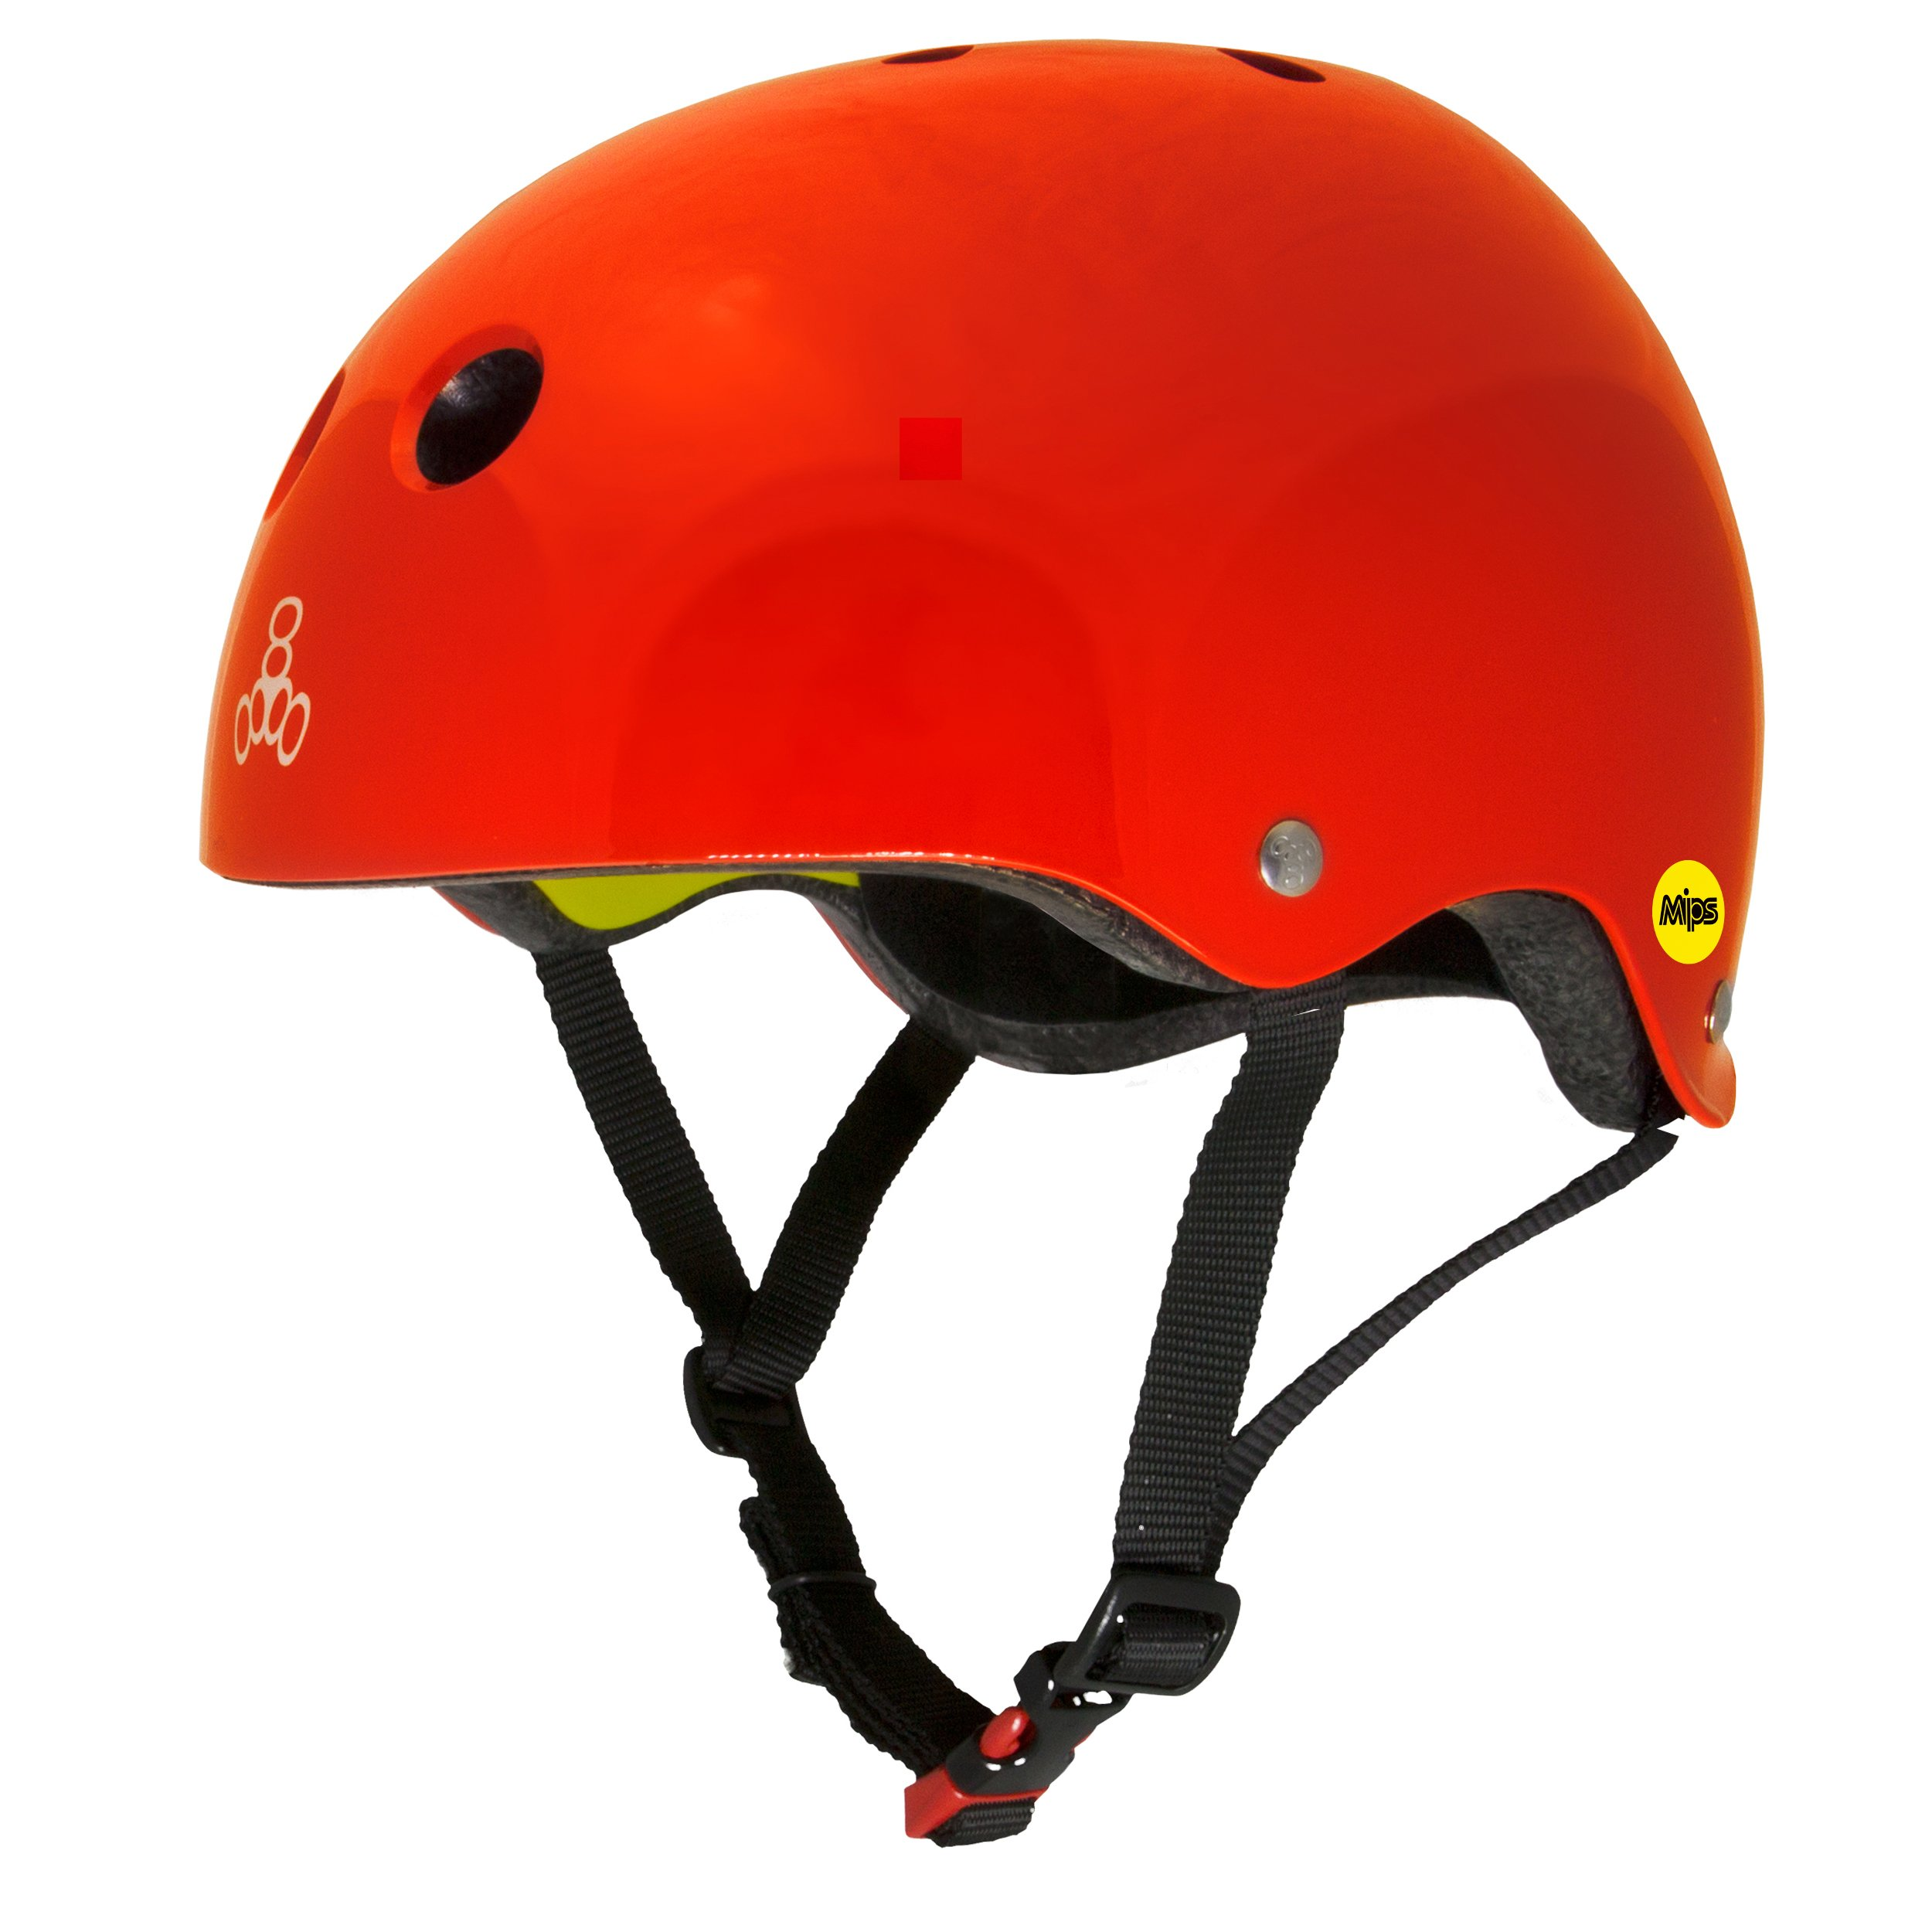 Triple 8 Dual Certified MIPS Helmet for Bike, Skate, Longboarding, BMX, and Commuting, Red Gloss, XS/S